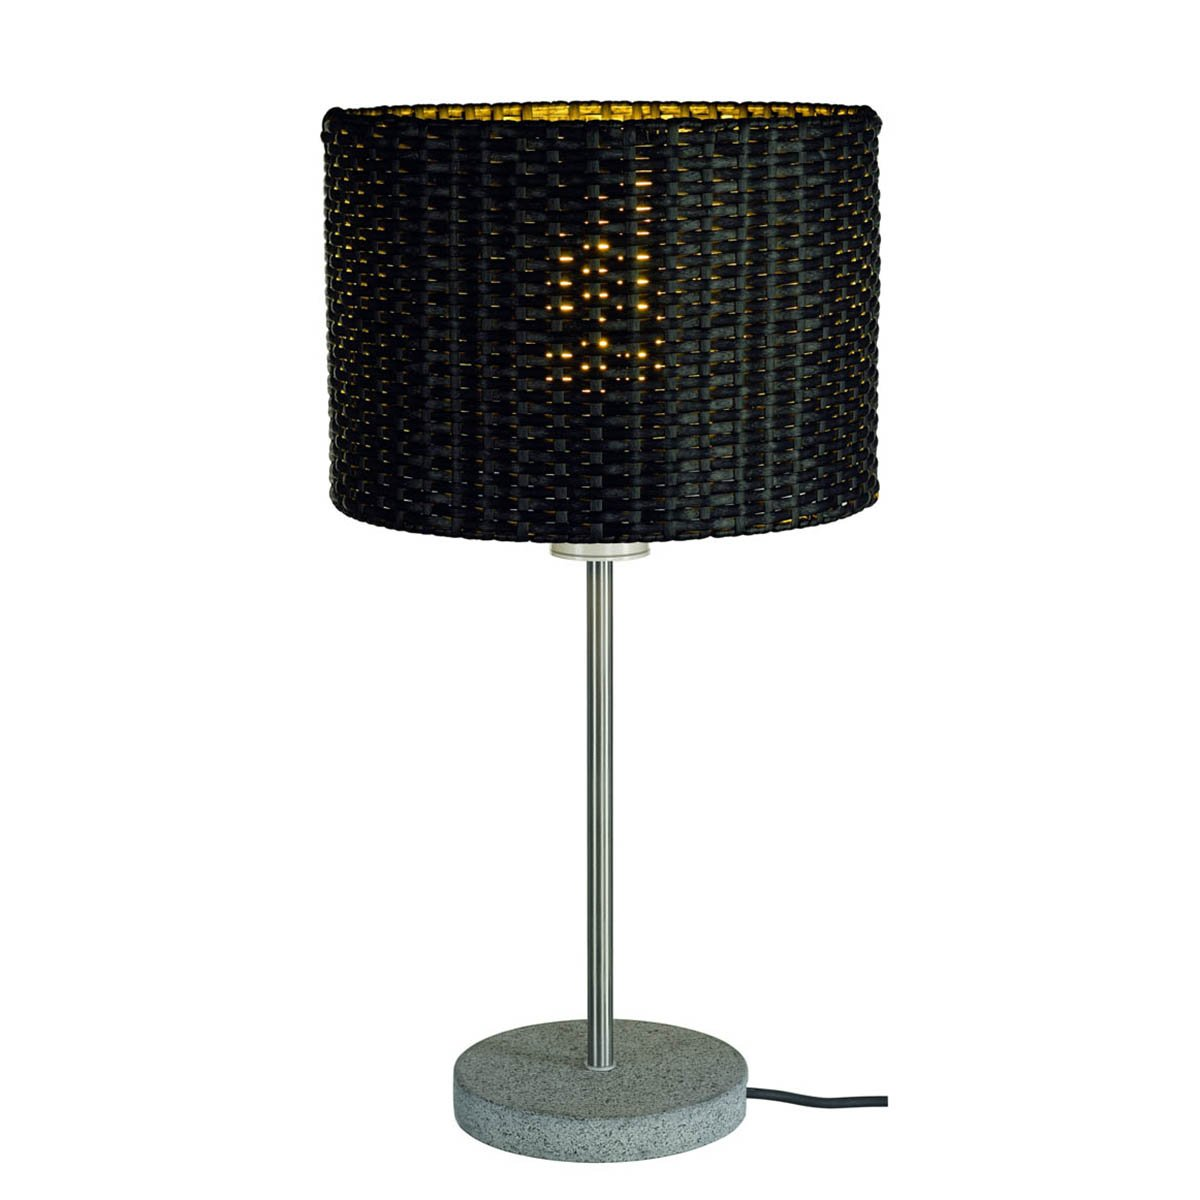 SLV Lighting 231385U Adegan Manila TL Outdoor Table Lamp, Stainless Steel/Anthracite